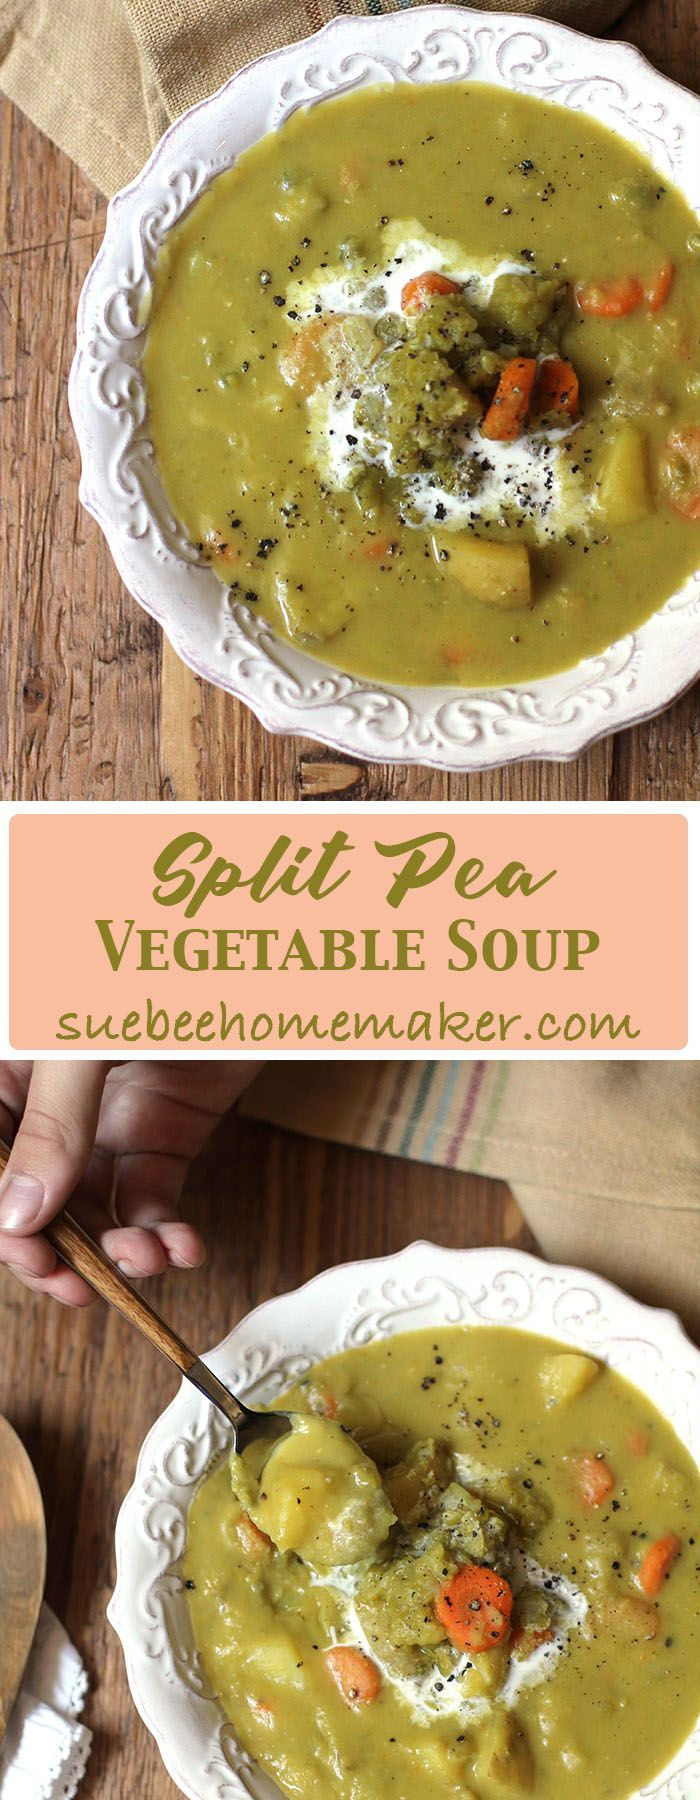 Use dried split peas, garlic, onion, carrots, celery, and yellow potatoes for a pot full of healthy benefits PLUS an amazing tasty Split Pea Vegetable Soup!